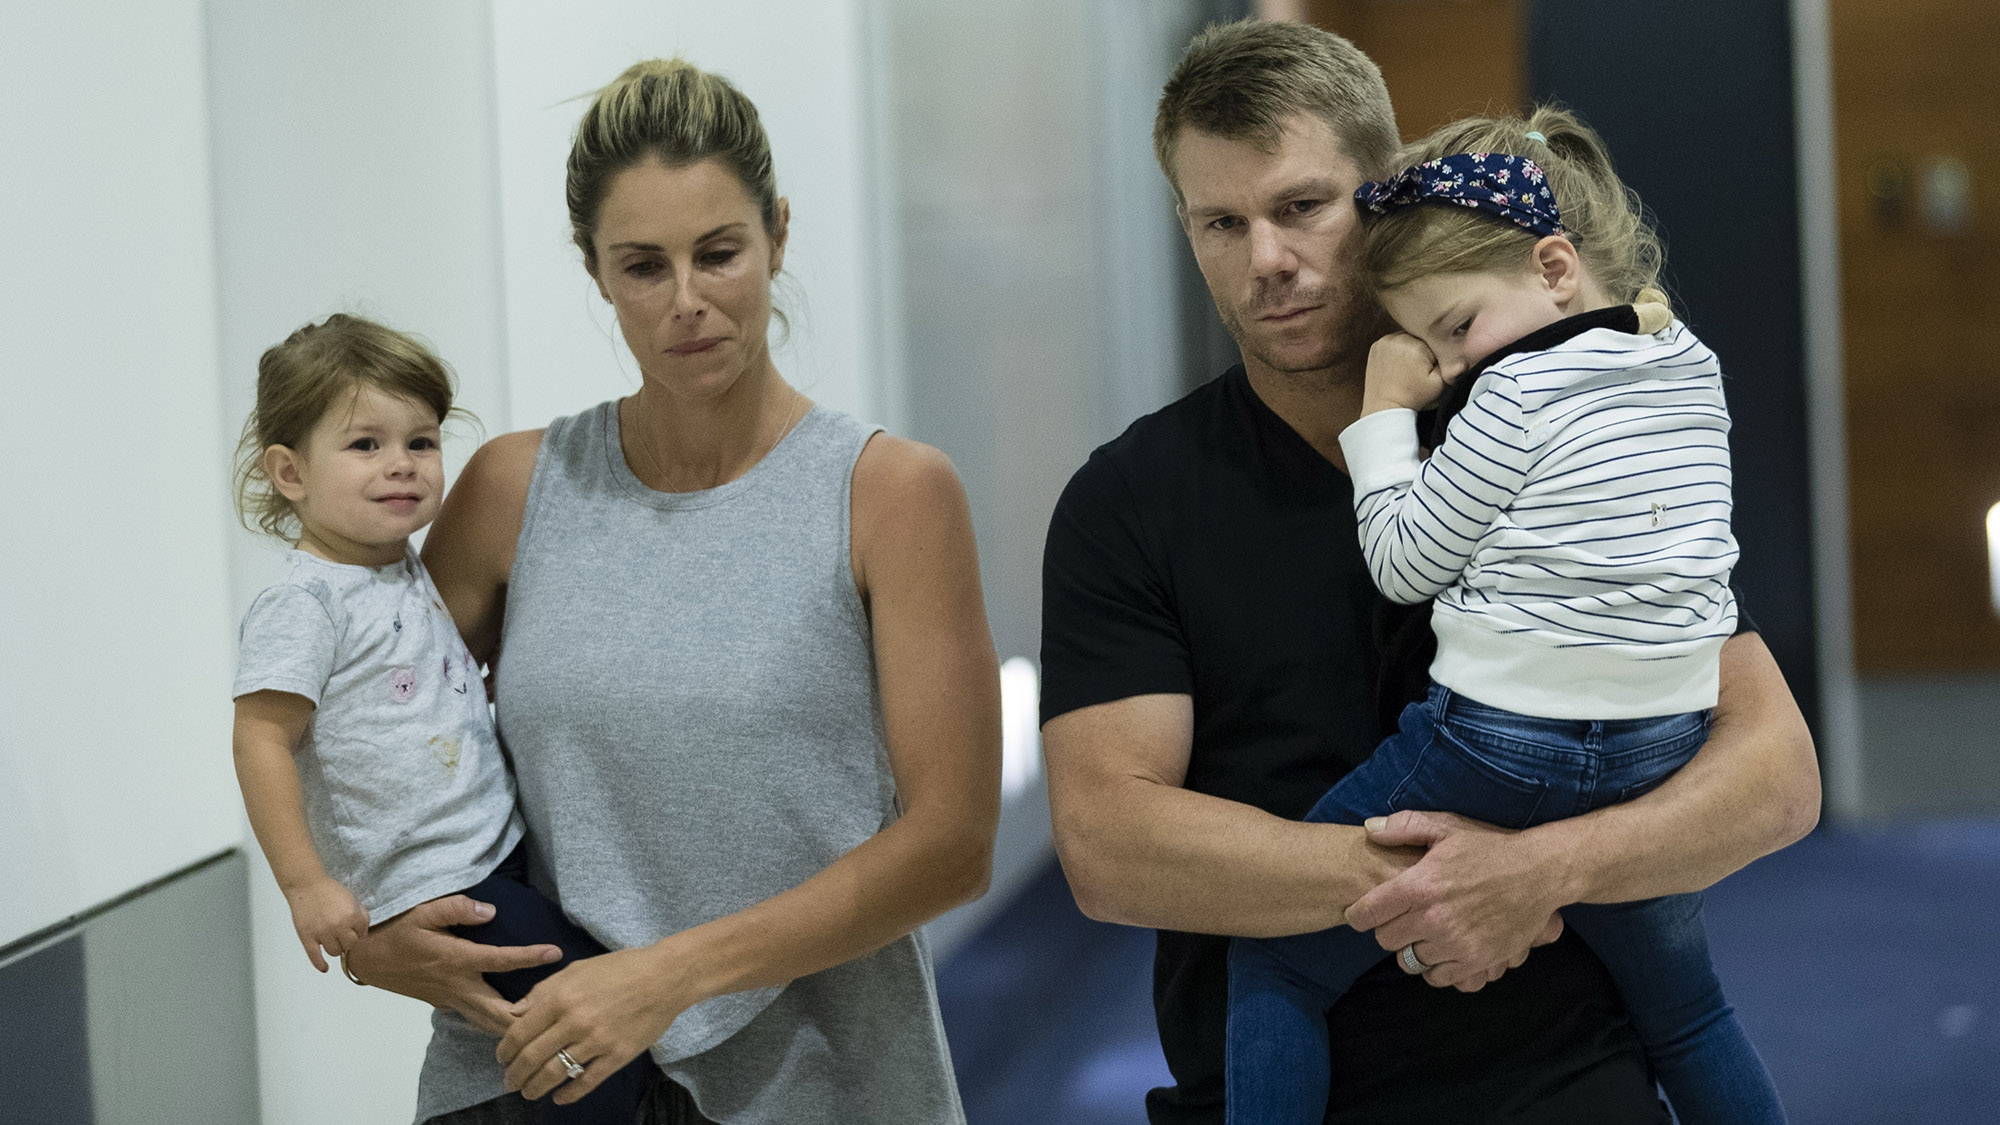 SA v AUS 2018: David Warner is not in a great headspace currently, says wife Candice